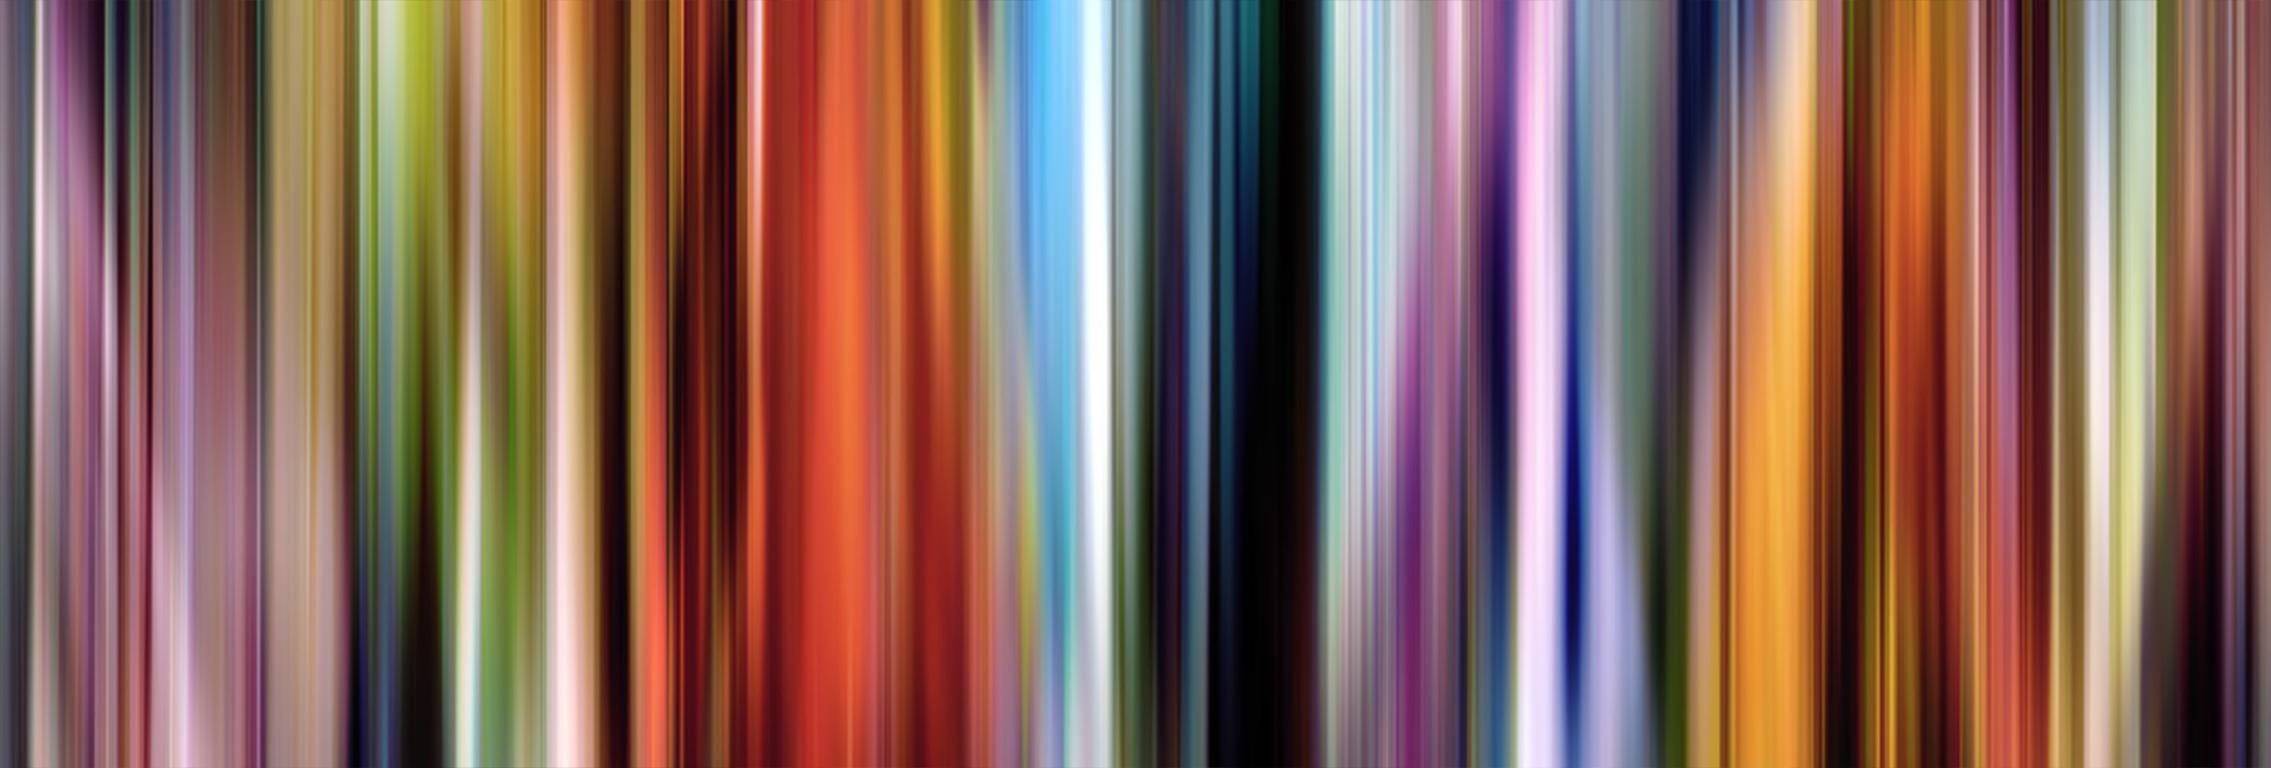 Flux, Abstracts